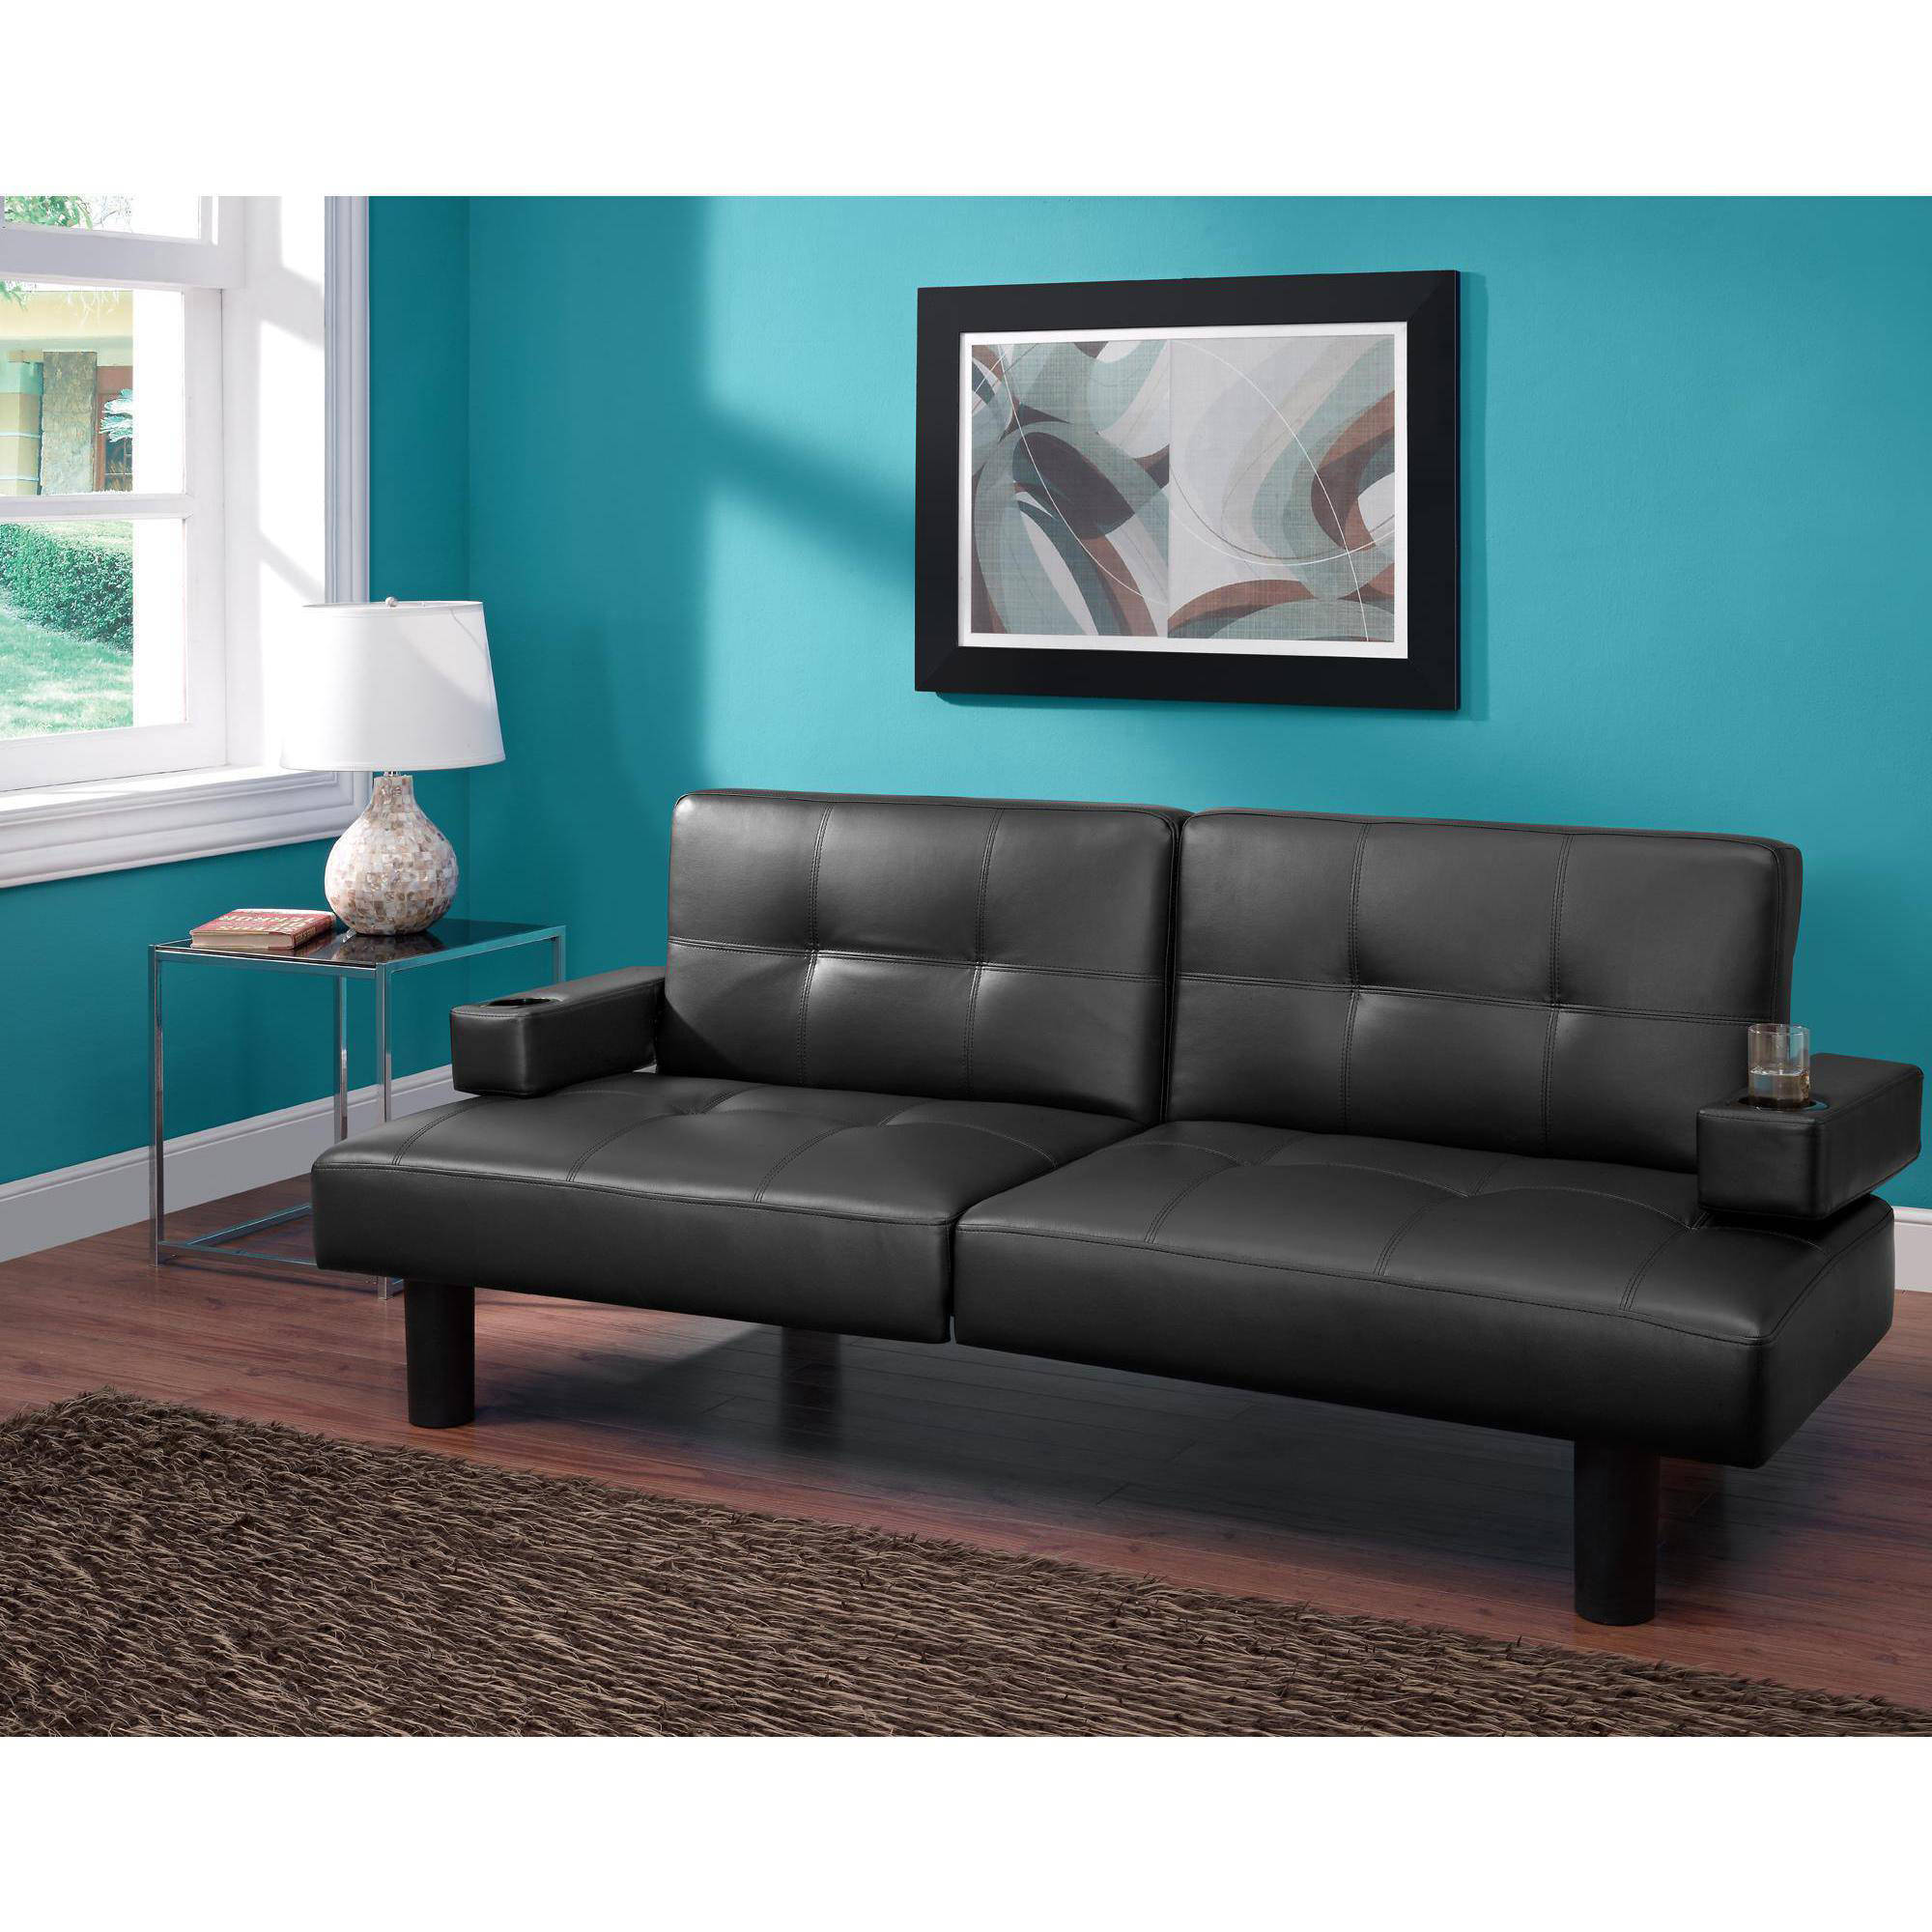 lotterspine futon sleeper tilanie couch product